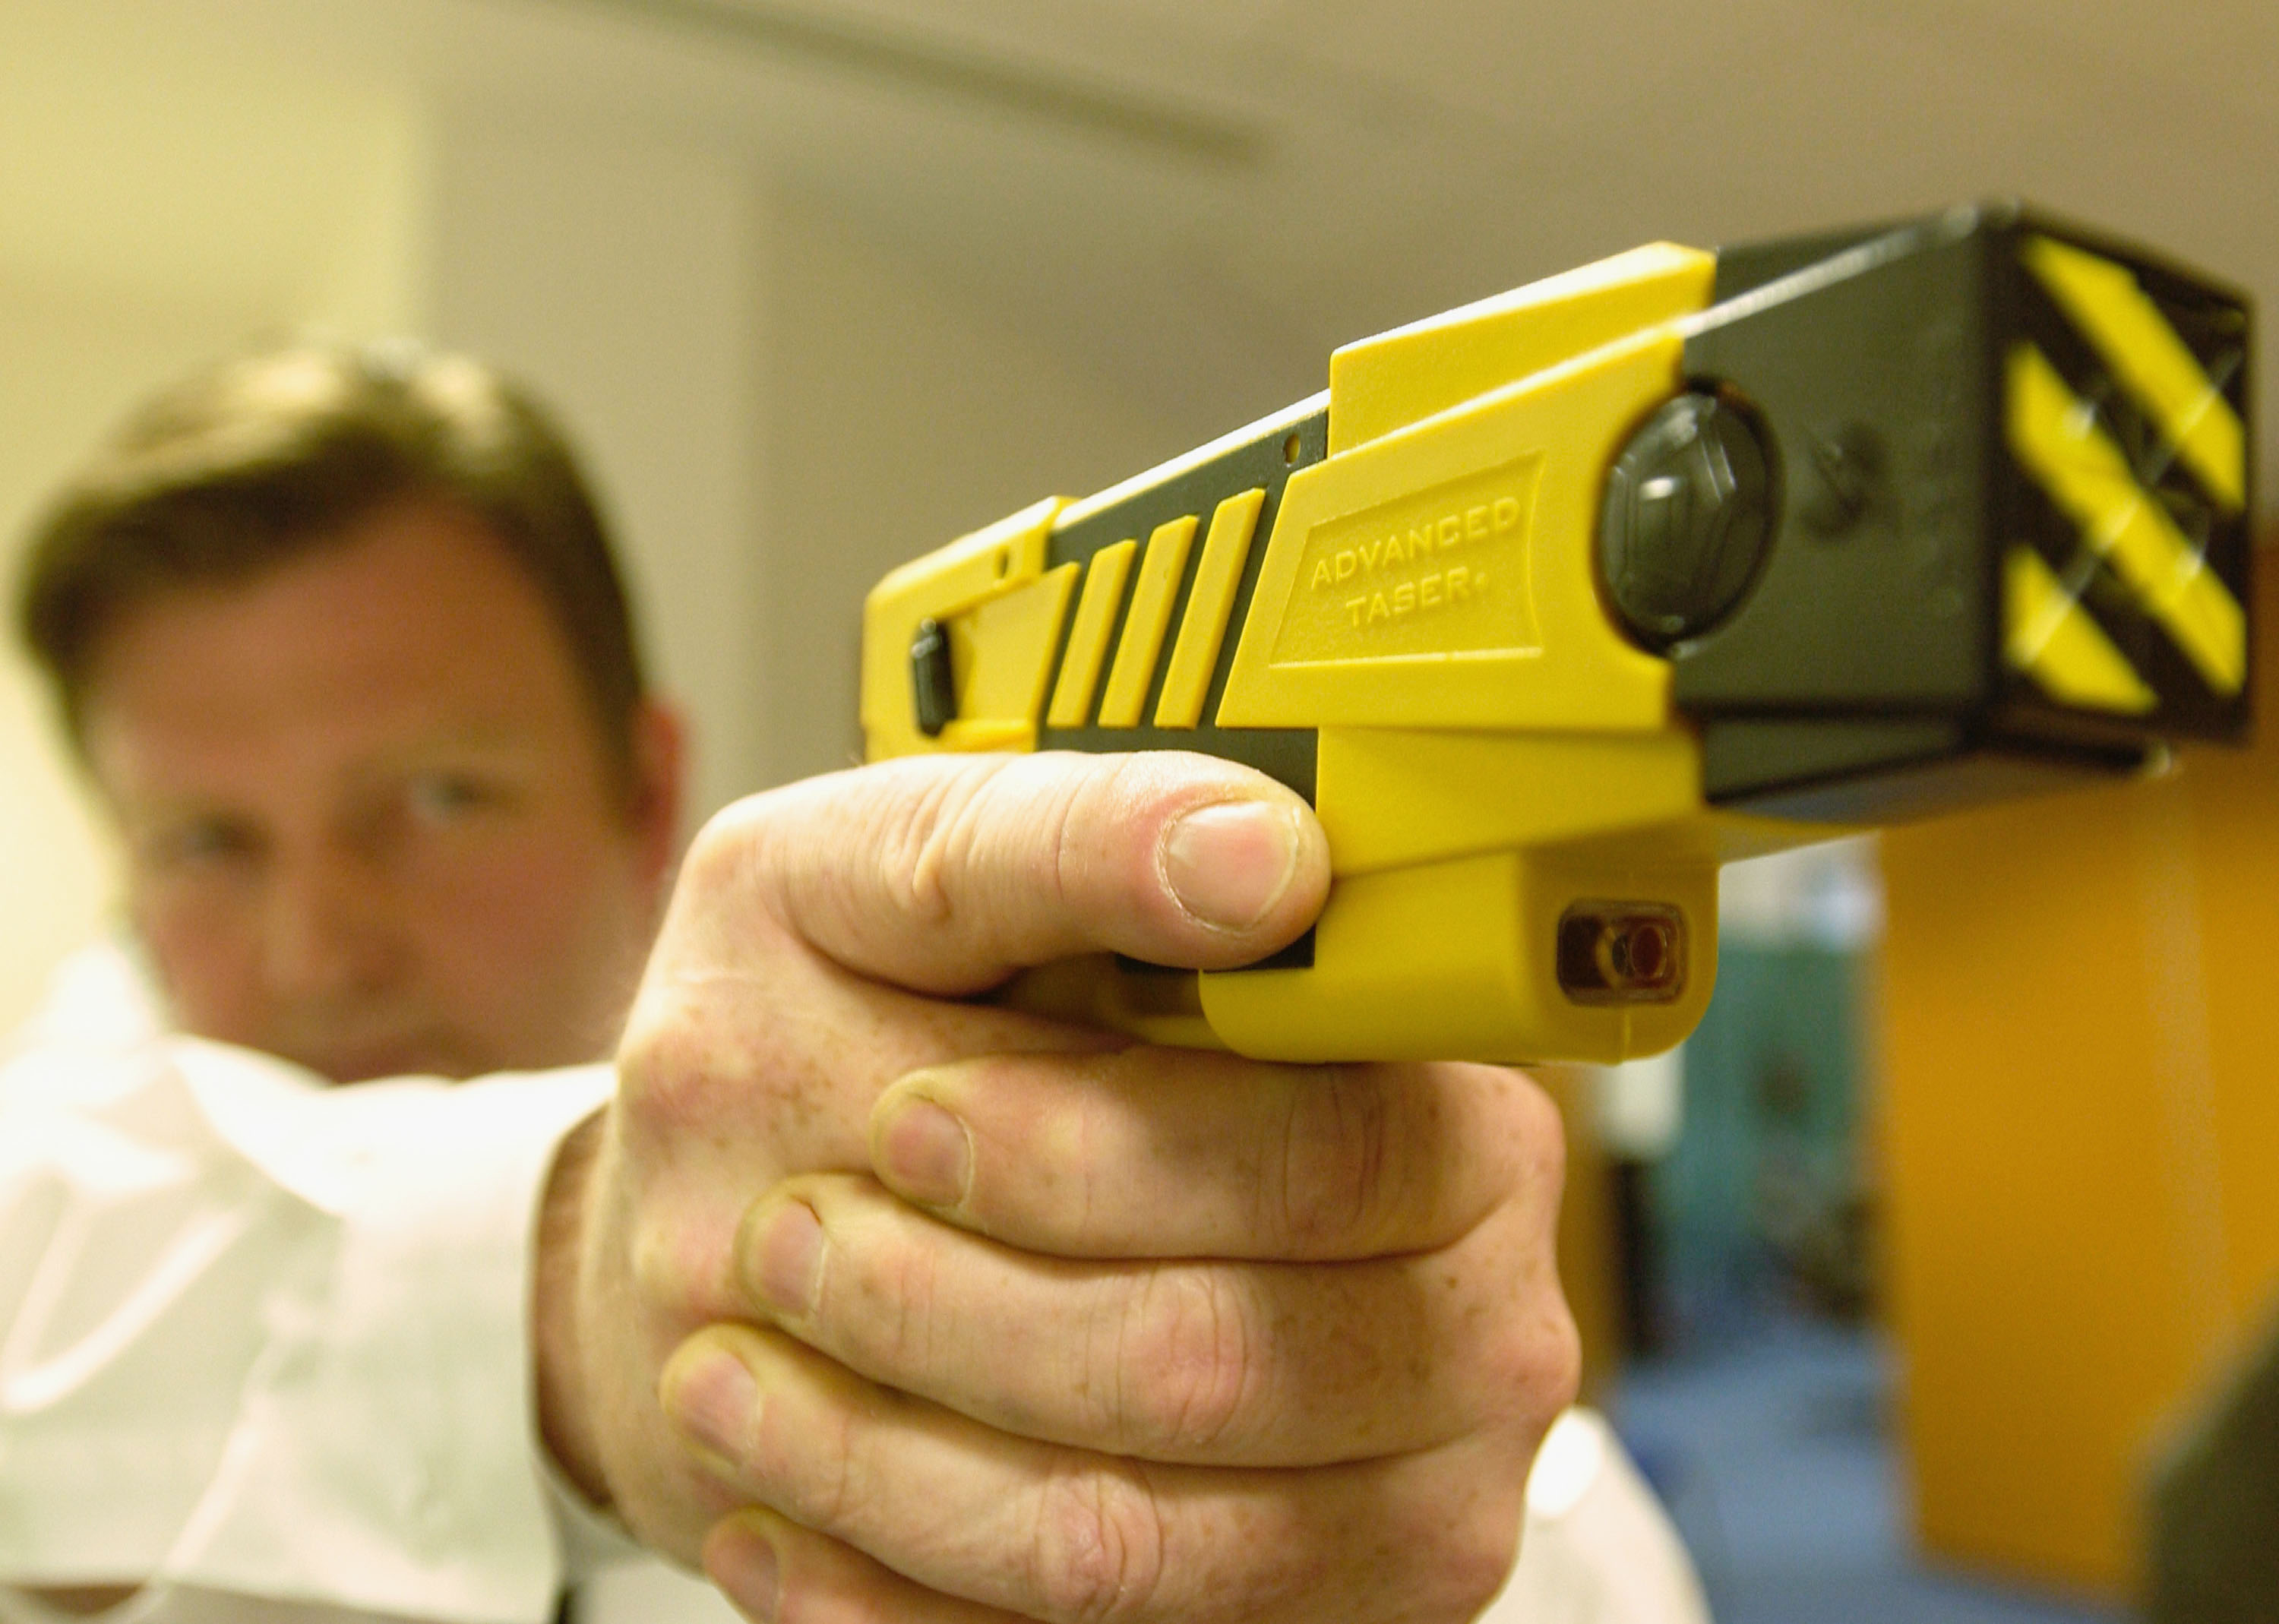 How to Troubleshoot a Stun Gun | Gone Outdoors | Your Adventure Awaits